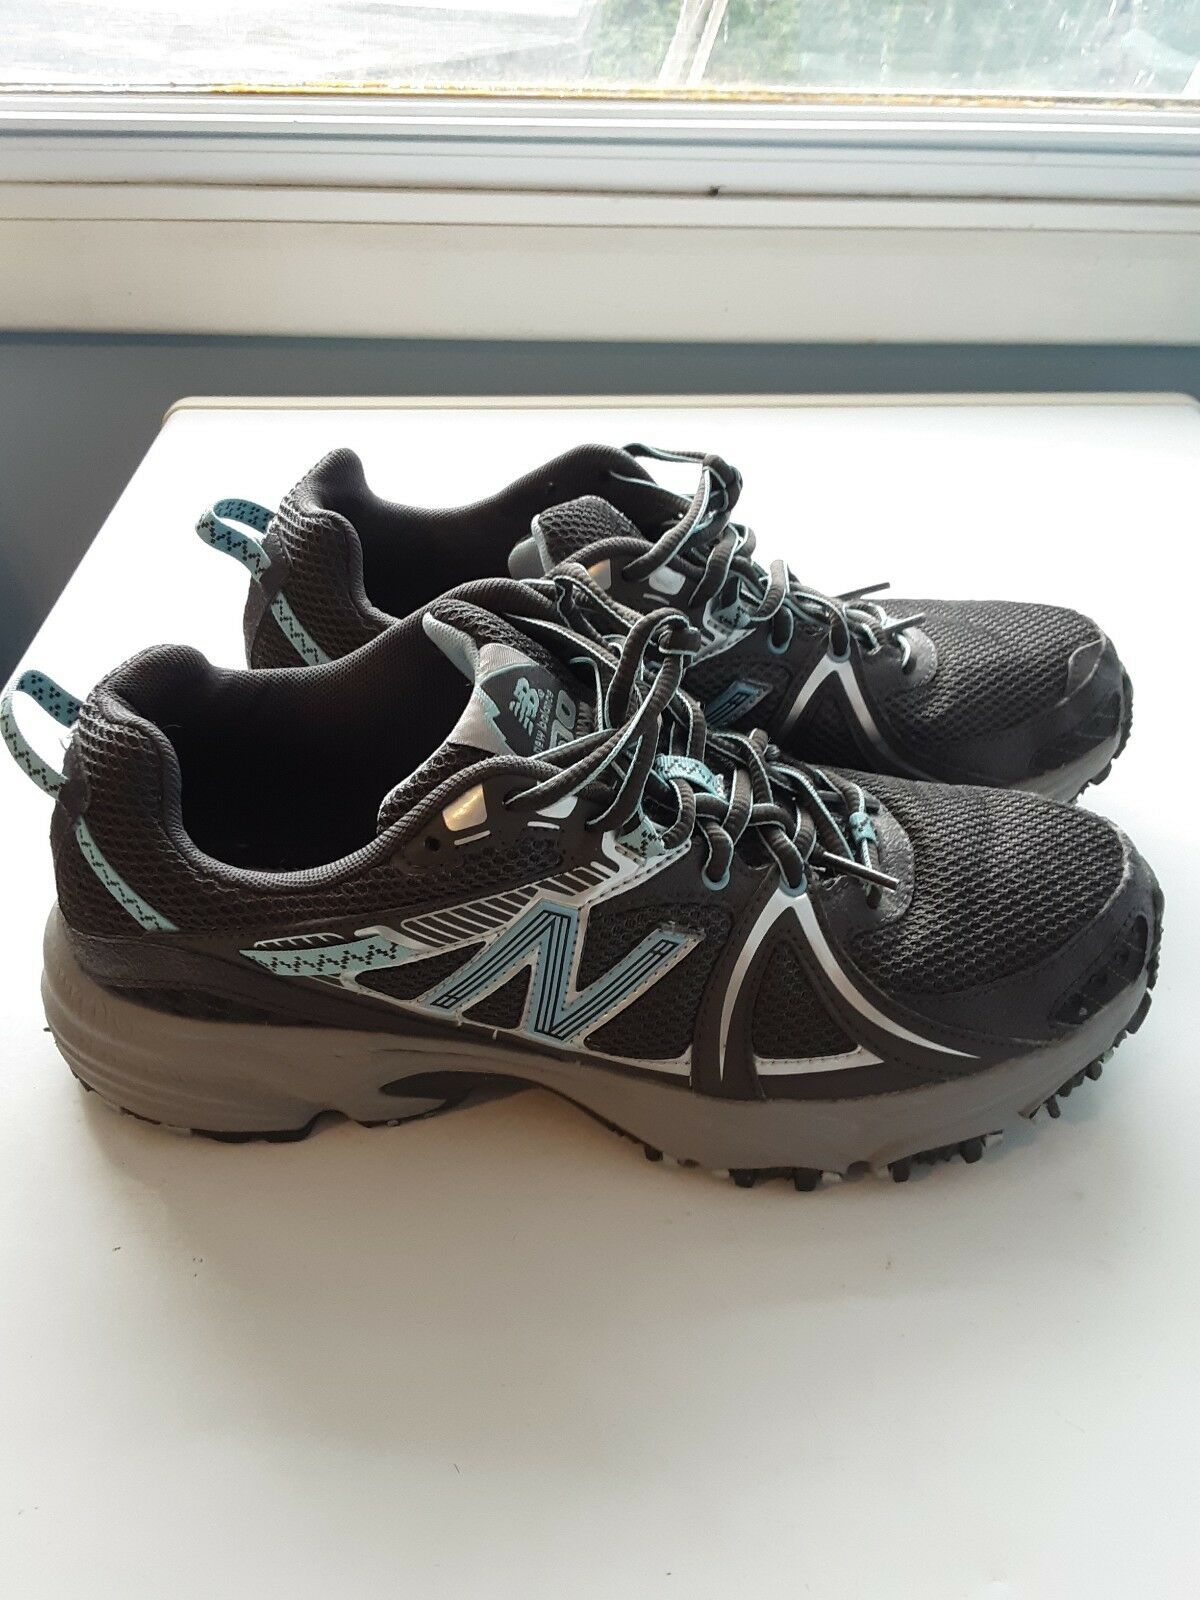 New Balance 510 Womens trail runners Size 10 Barely Worn